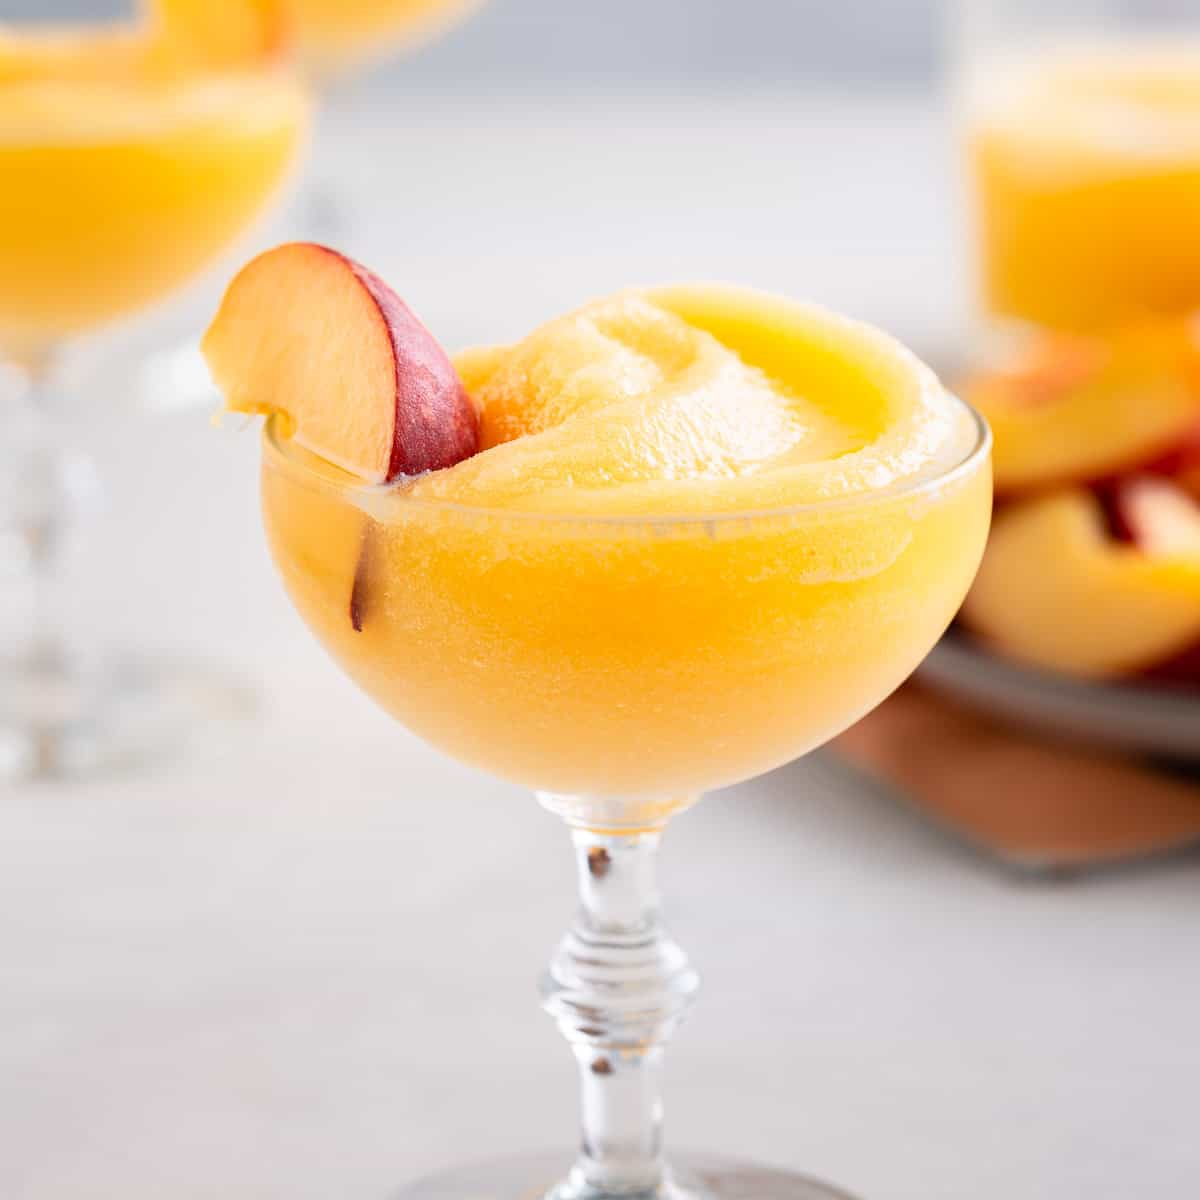 slushy yellow drink in a glass with a peach wedge